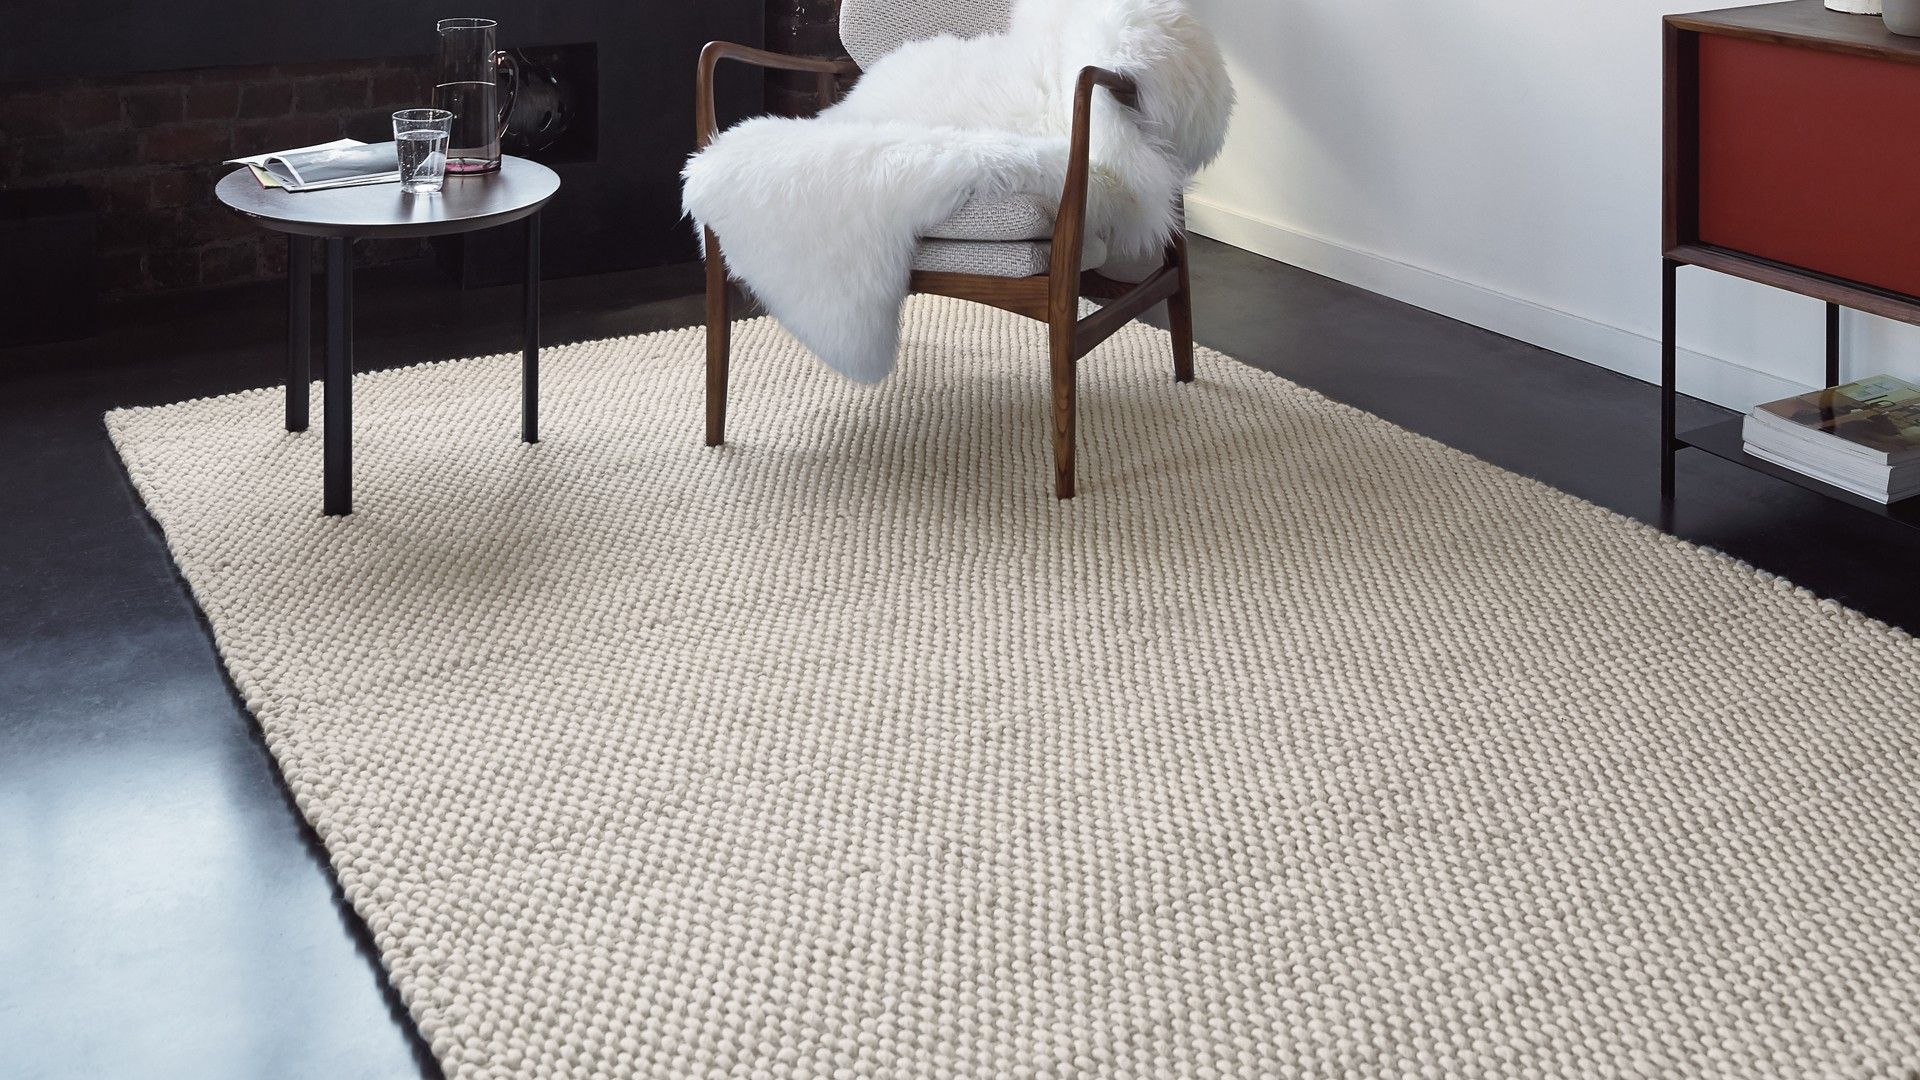 Salon Laine Contemporain Tapis Contemporain Tapis Cr Me Knit | Tapis-moquette